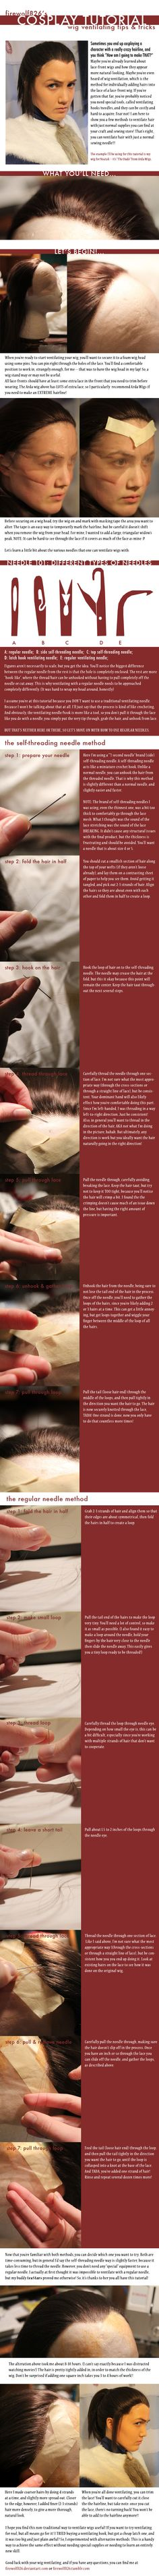 Cosplay Tutorial: Wig Ventilating Tips and Tricks by firewolf826.deviantart.com on @deviantART